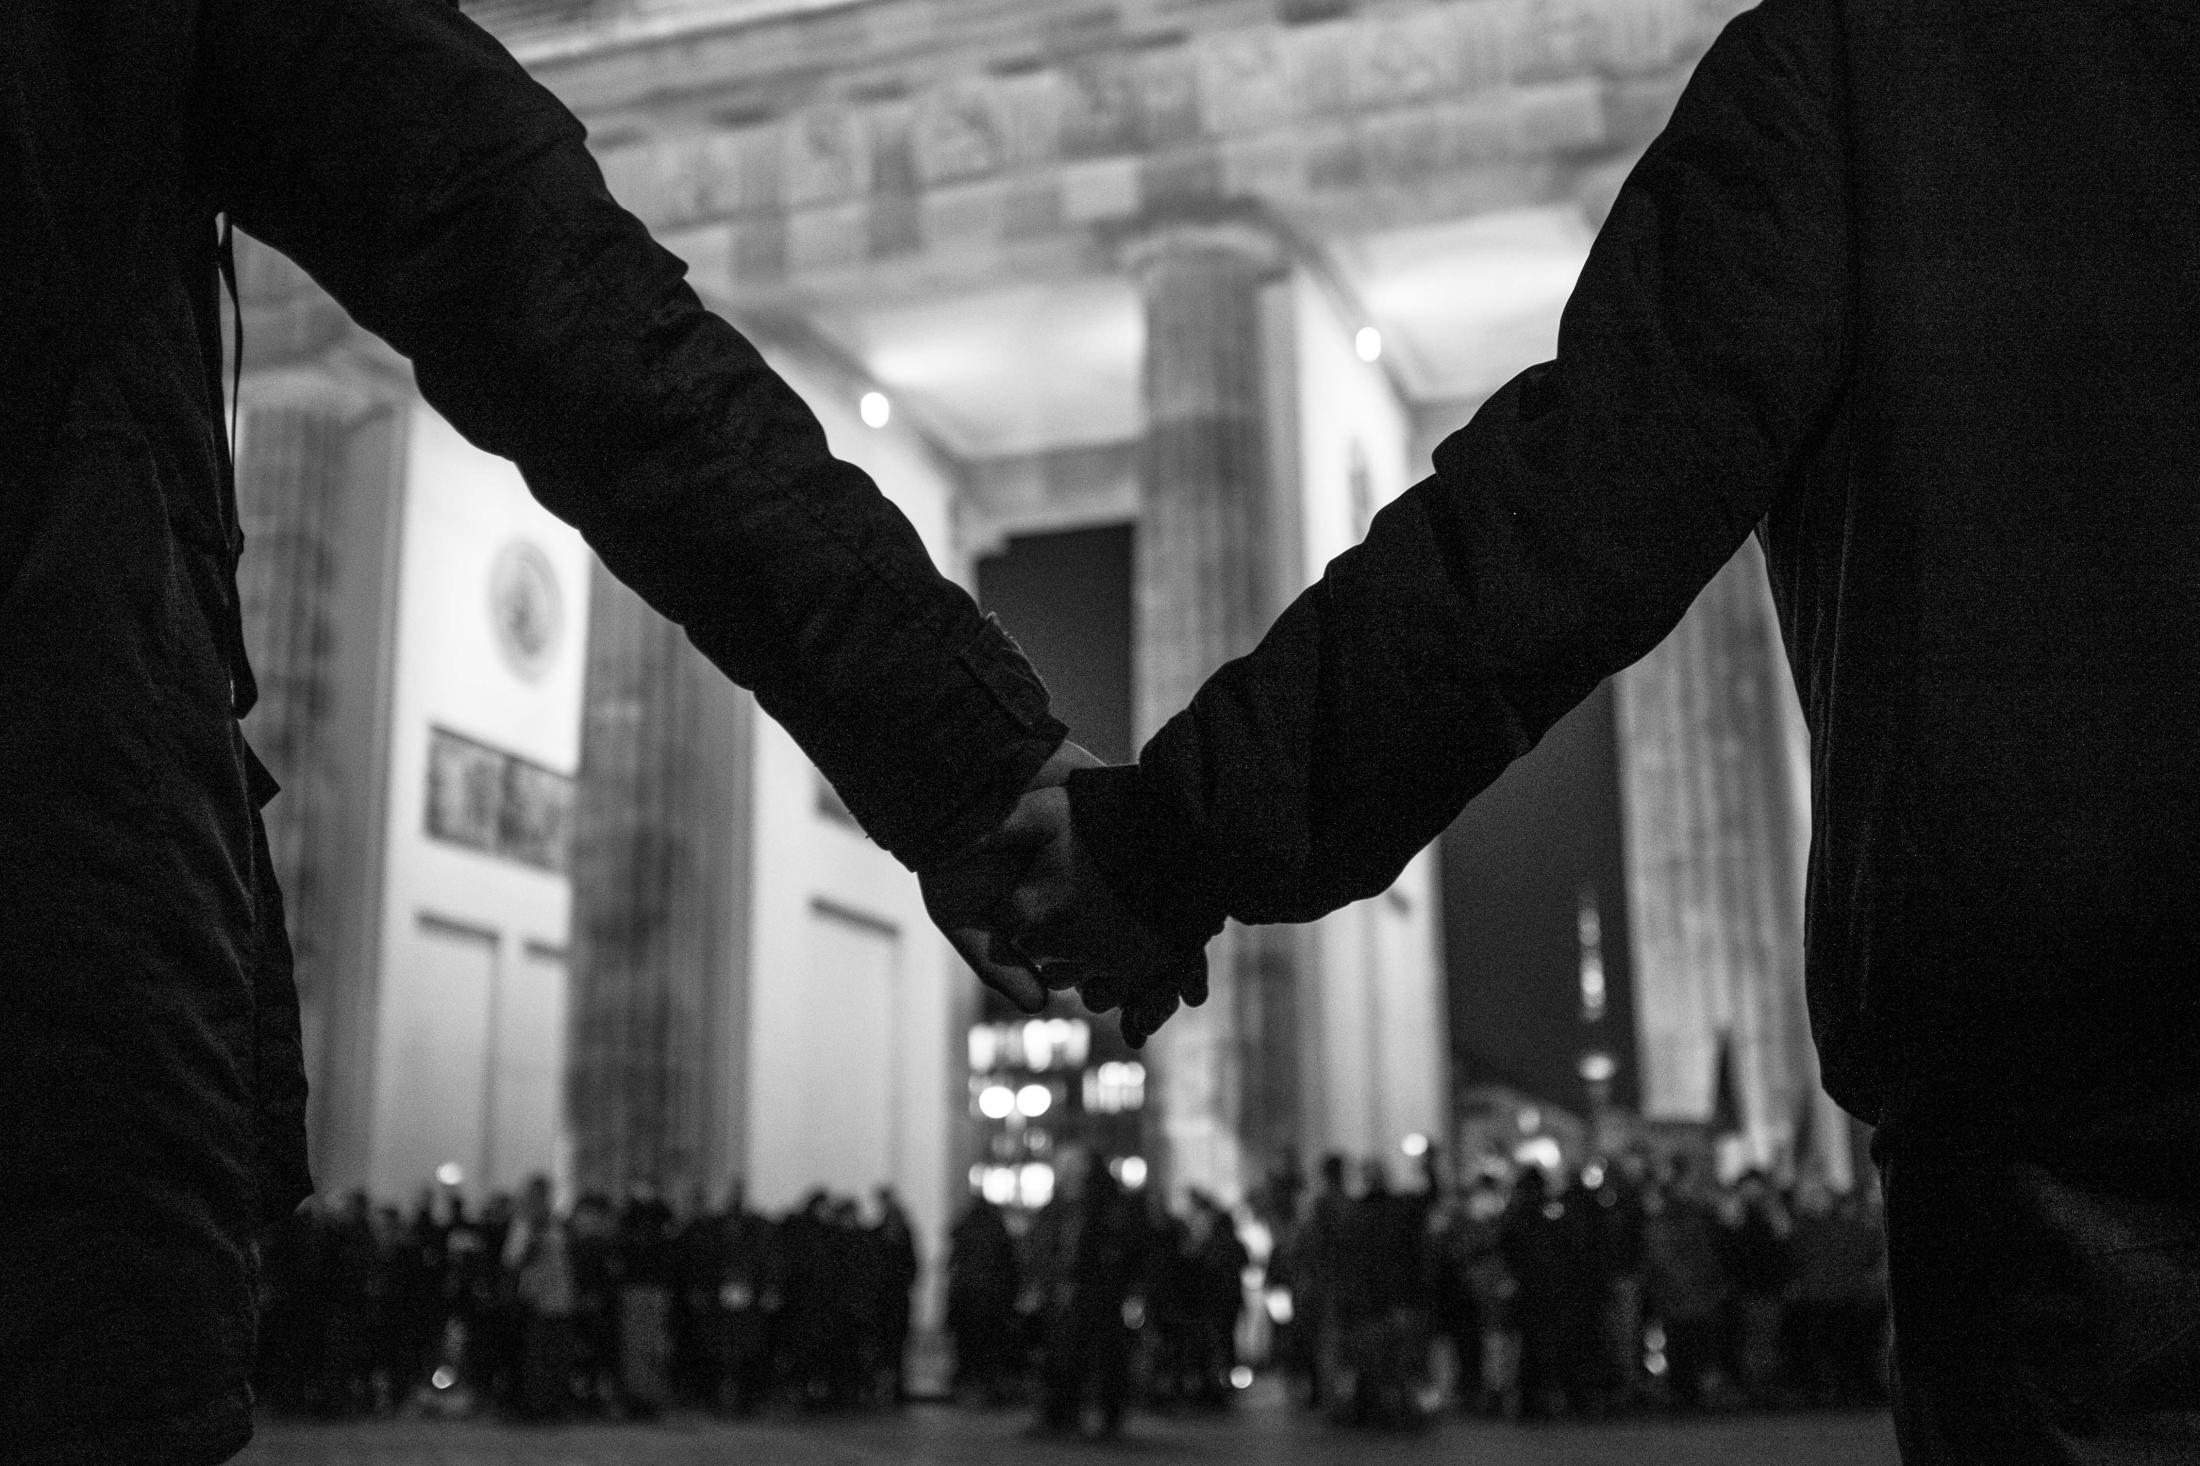 Vigil in Berlin for the victims of an act of far-right terrorism in Hanau/Germany, where nine were brutally murdered by a racist, who later took his own life and that of his mother. Berlin, February 20, 2020.